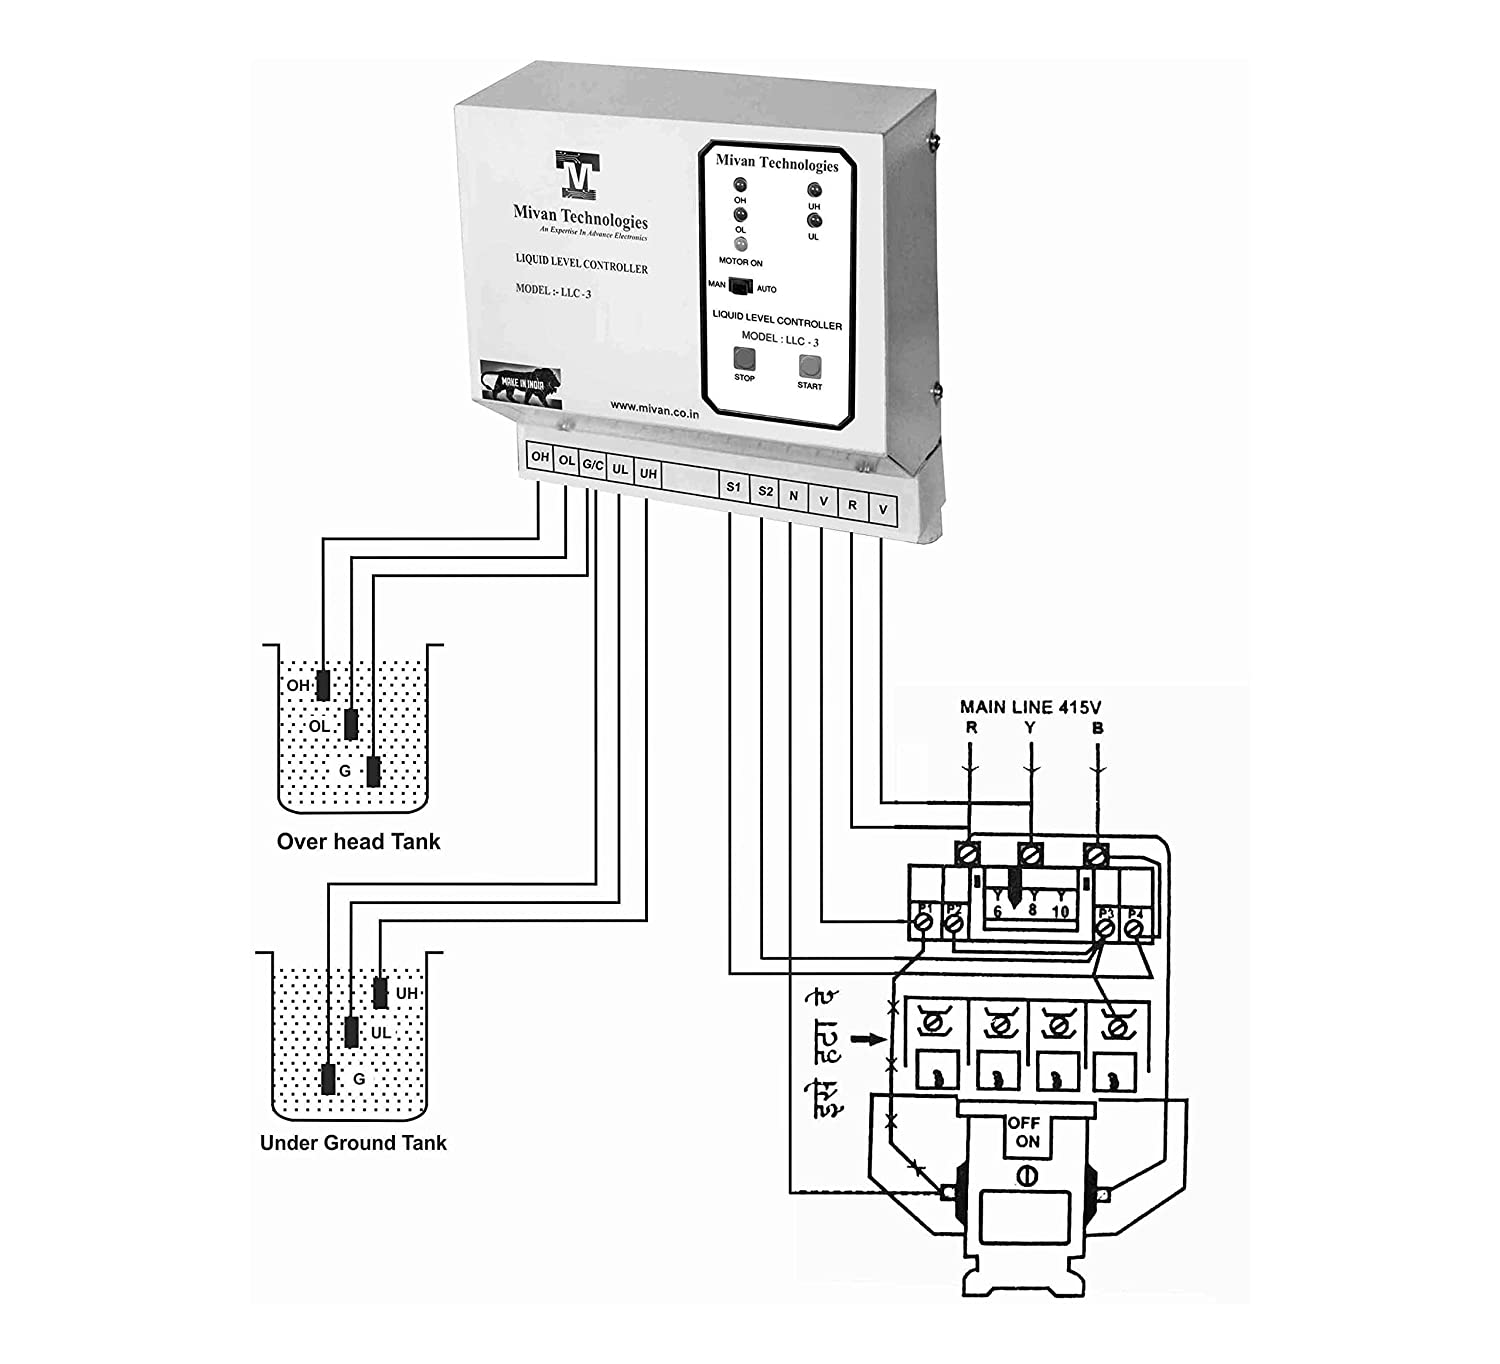 Buy Mivan Technologies 3 Phase Fully Automatic Water Level Sensor Wiring Diagram Controller And Indicators For Motor Submersible Pump With 6 Sensors Online